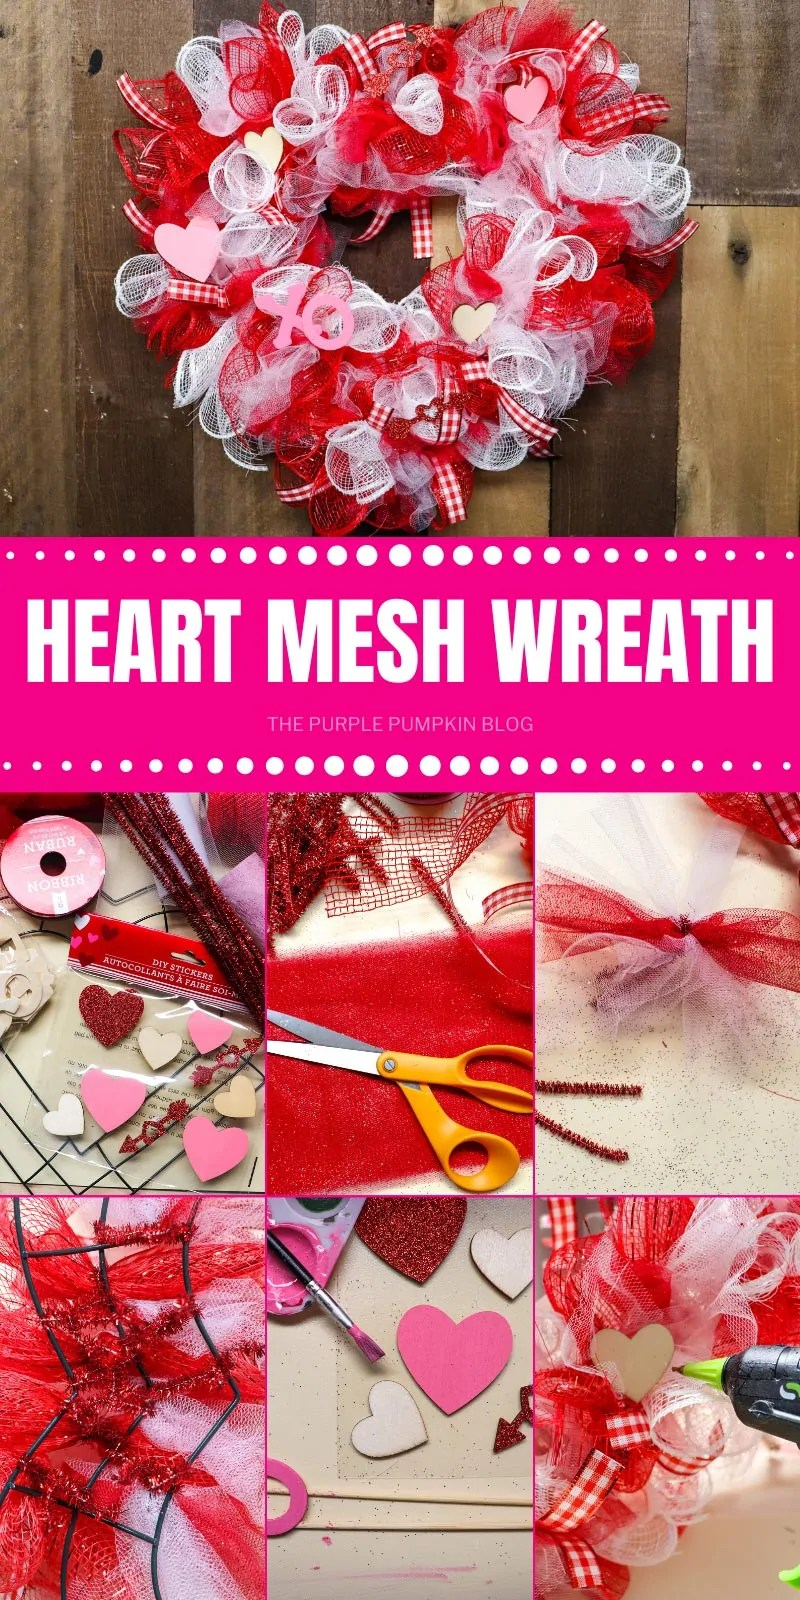 Heart Mesh Wreath with some step-by-step images